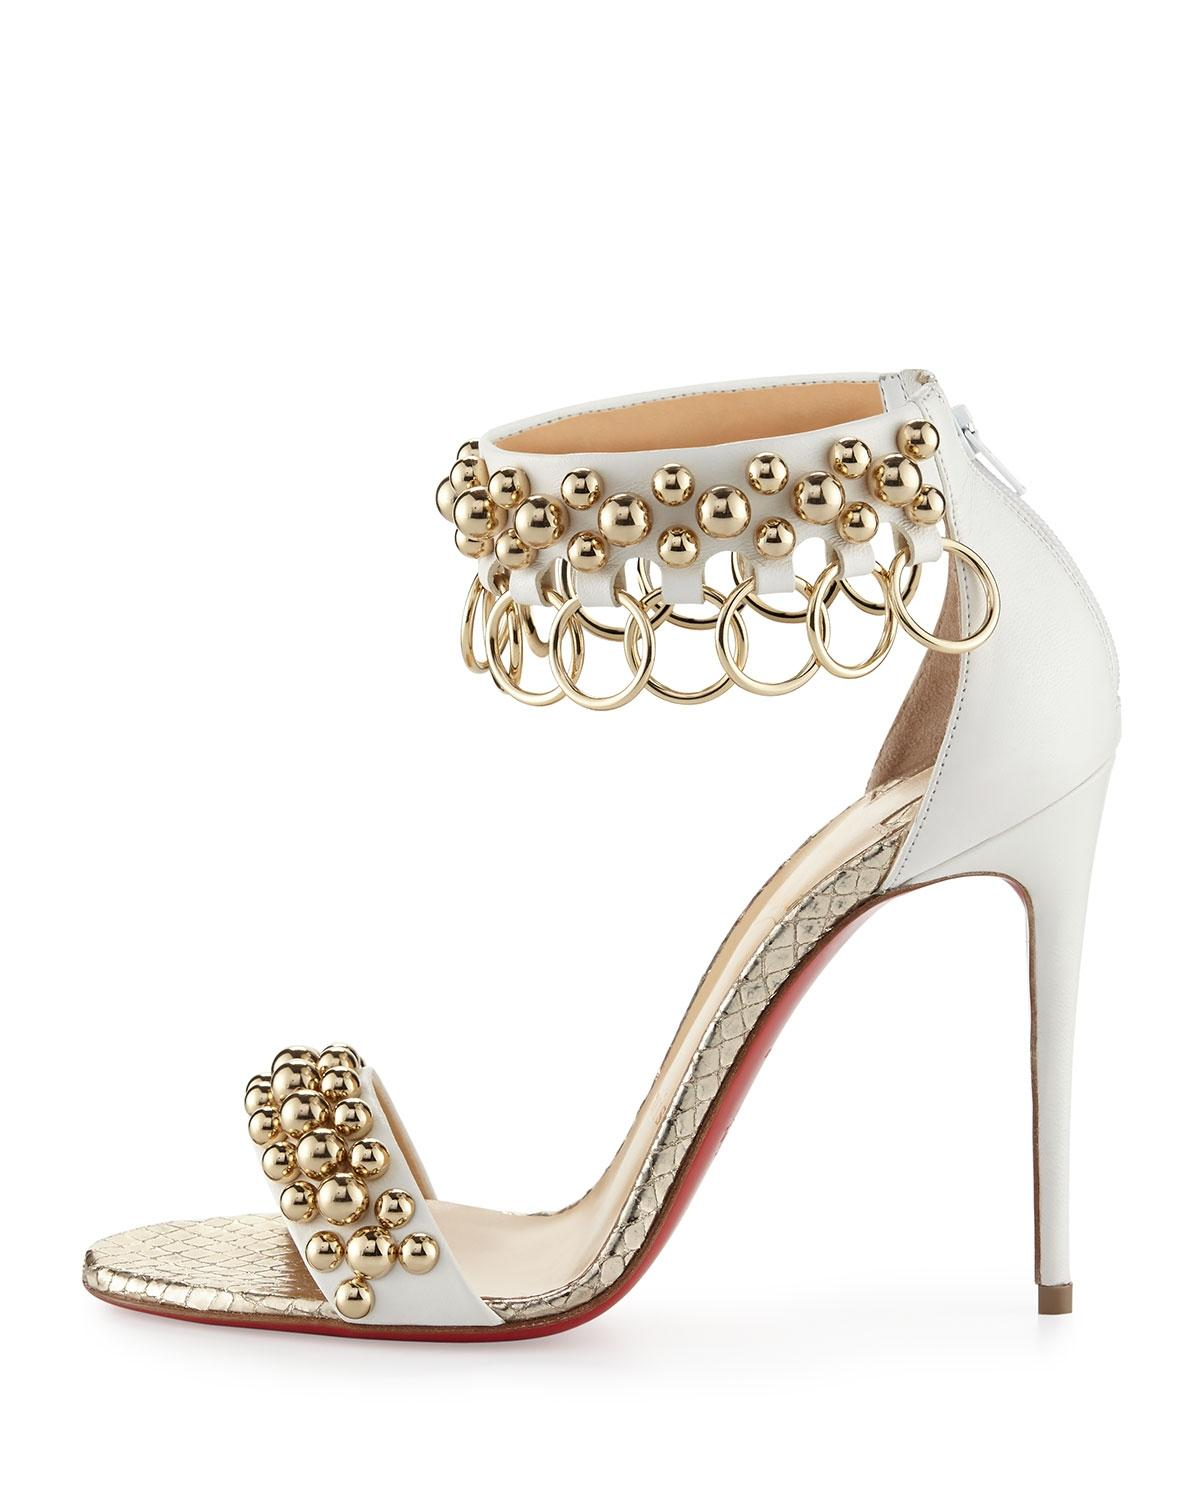 Christian Louboutin Sandals Gypsandal Size 38 White Gold Pumps ...